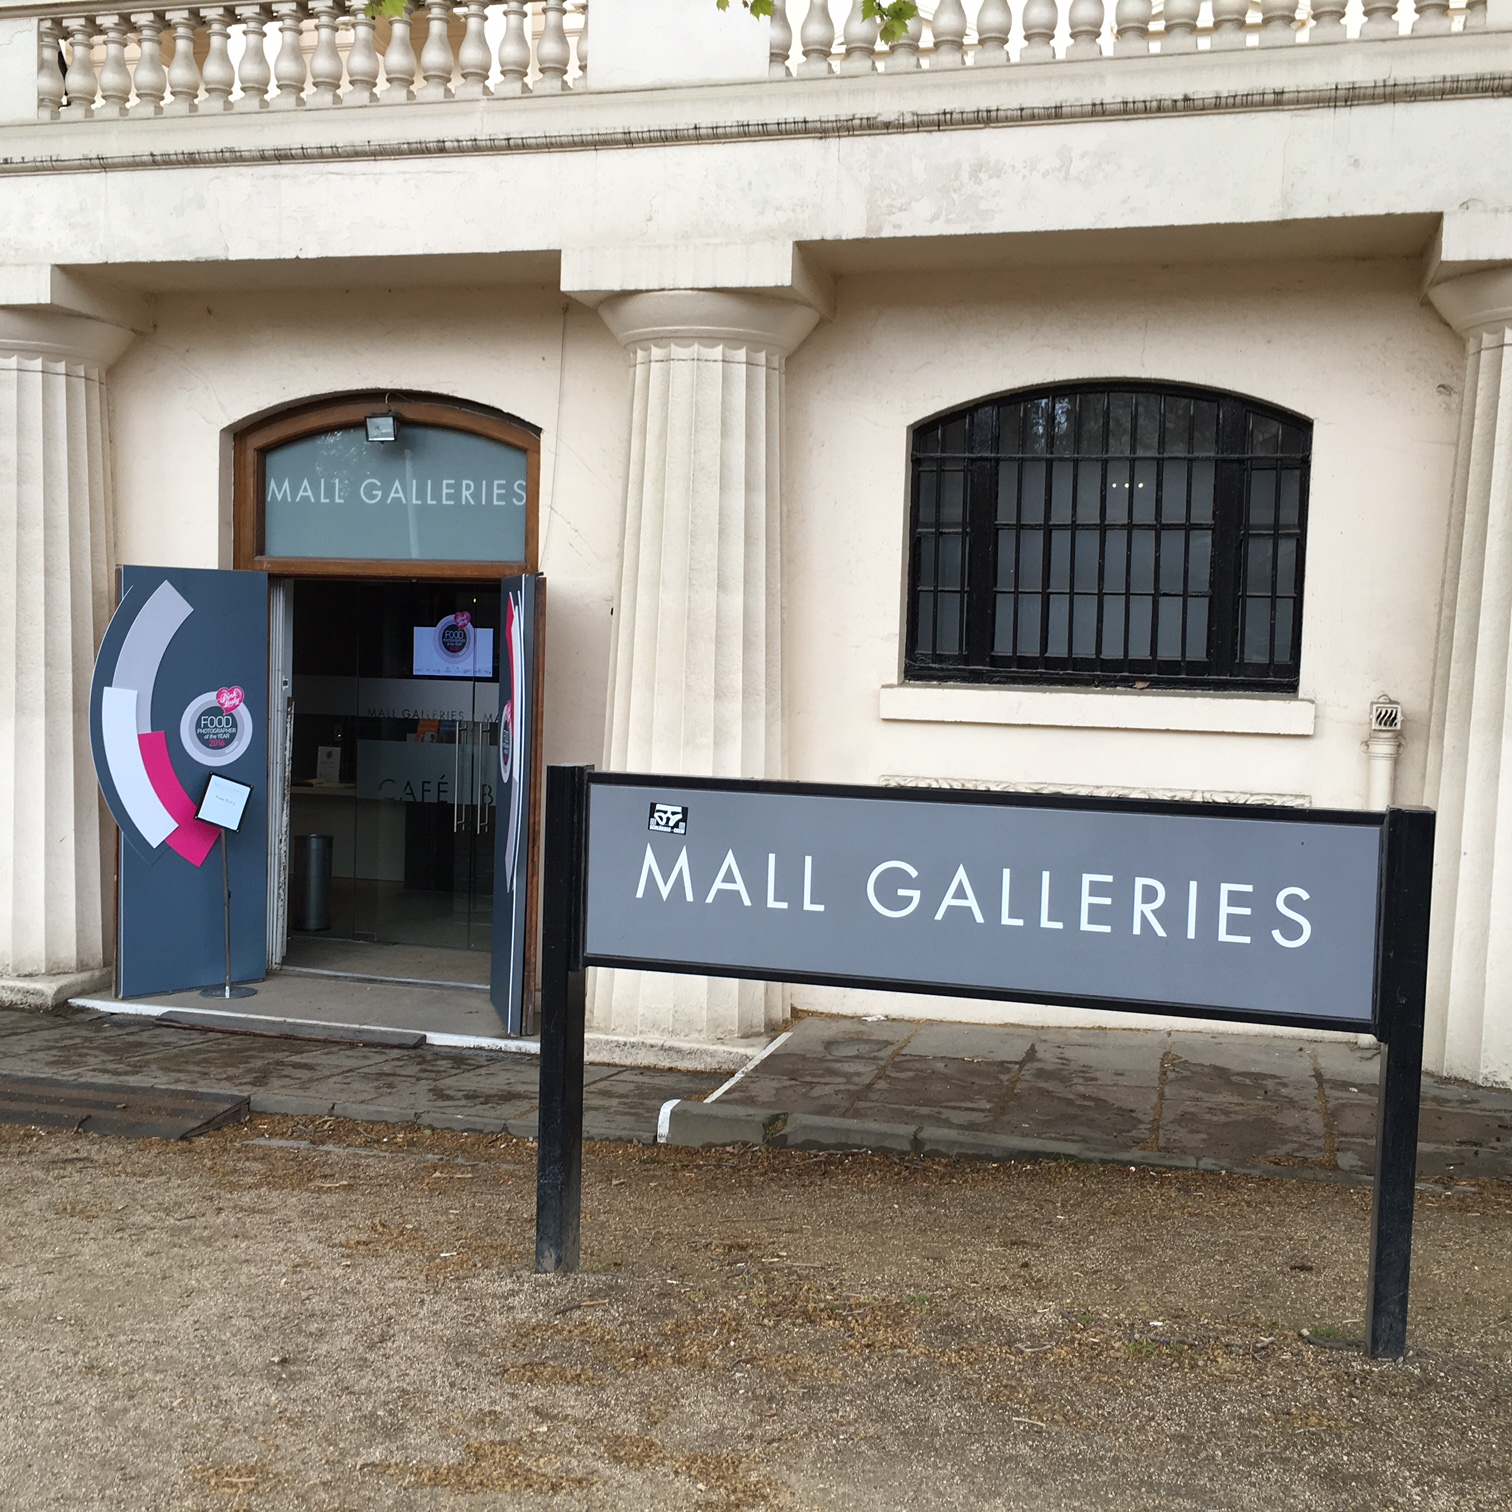 The front entrance of the Mall Galleries